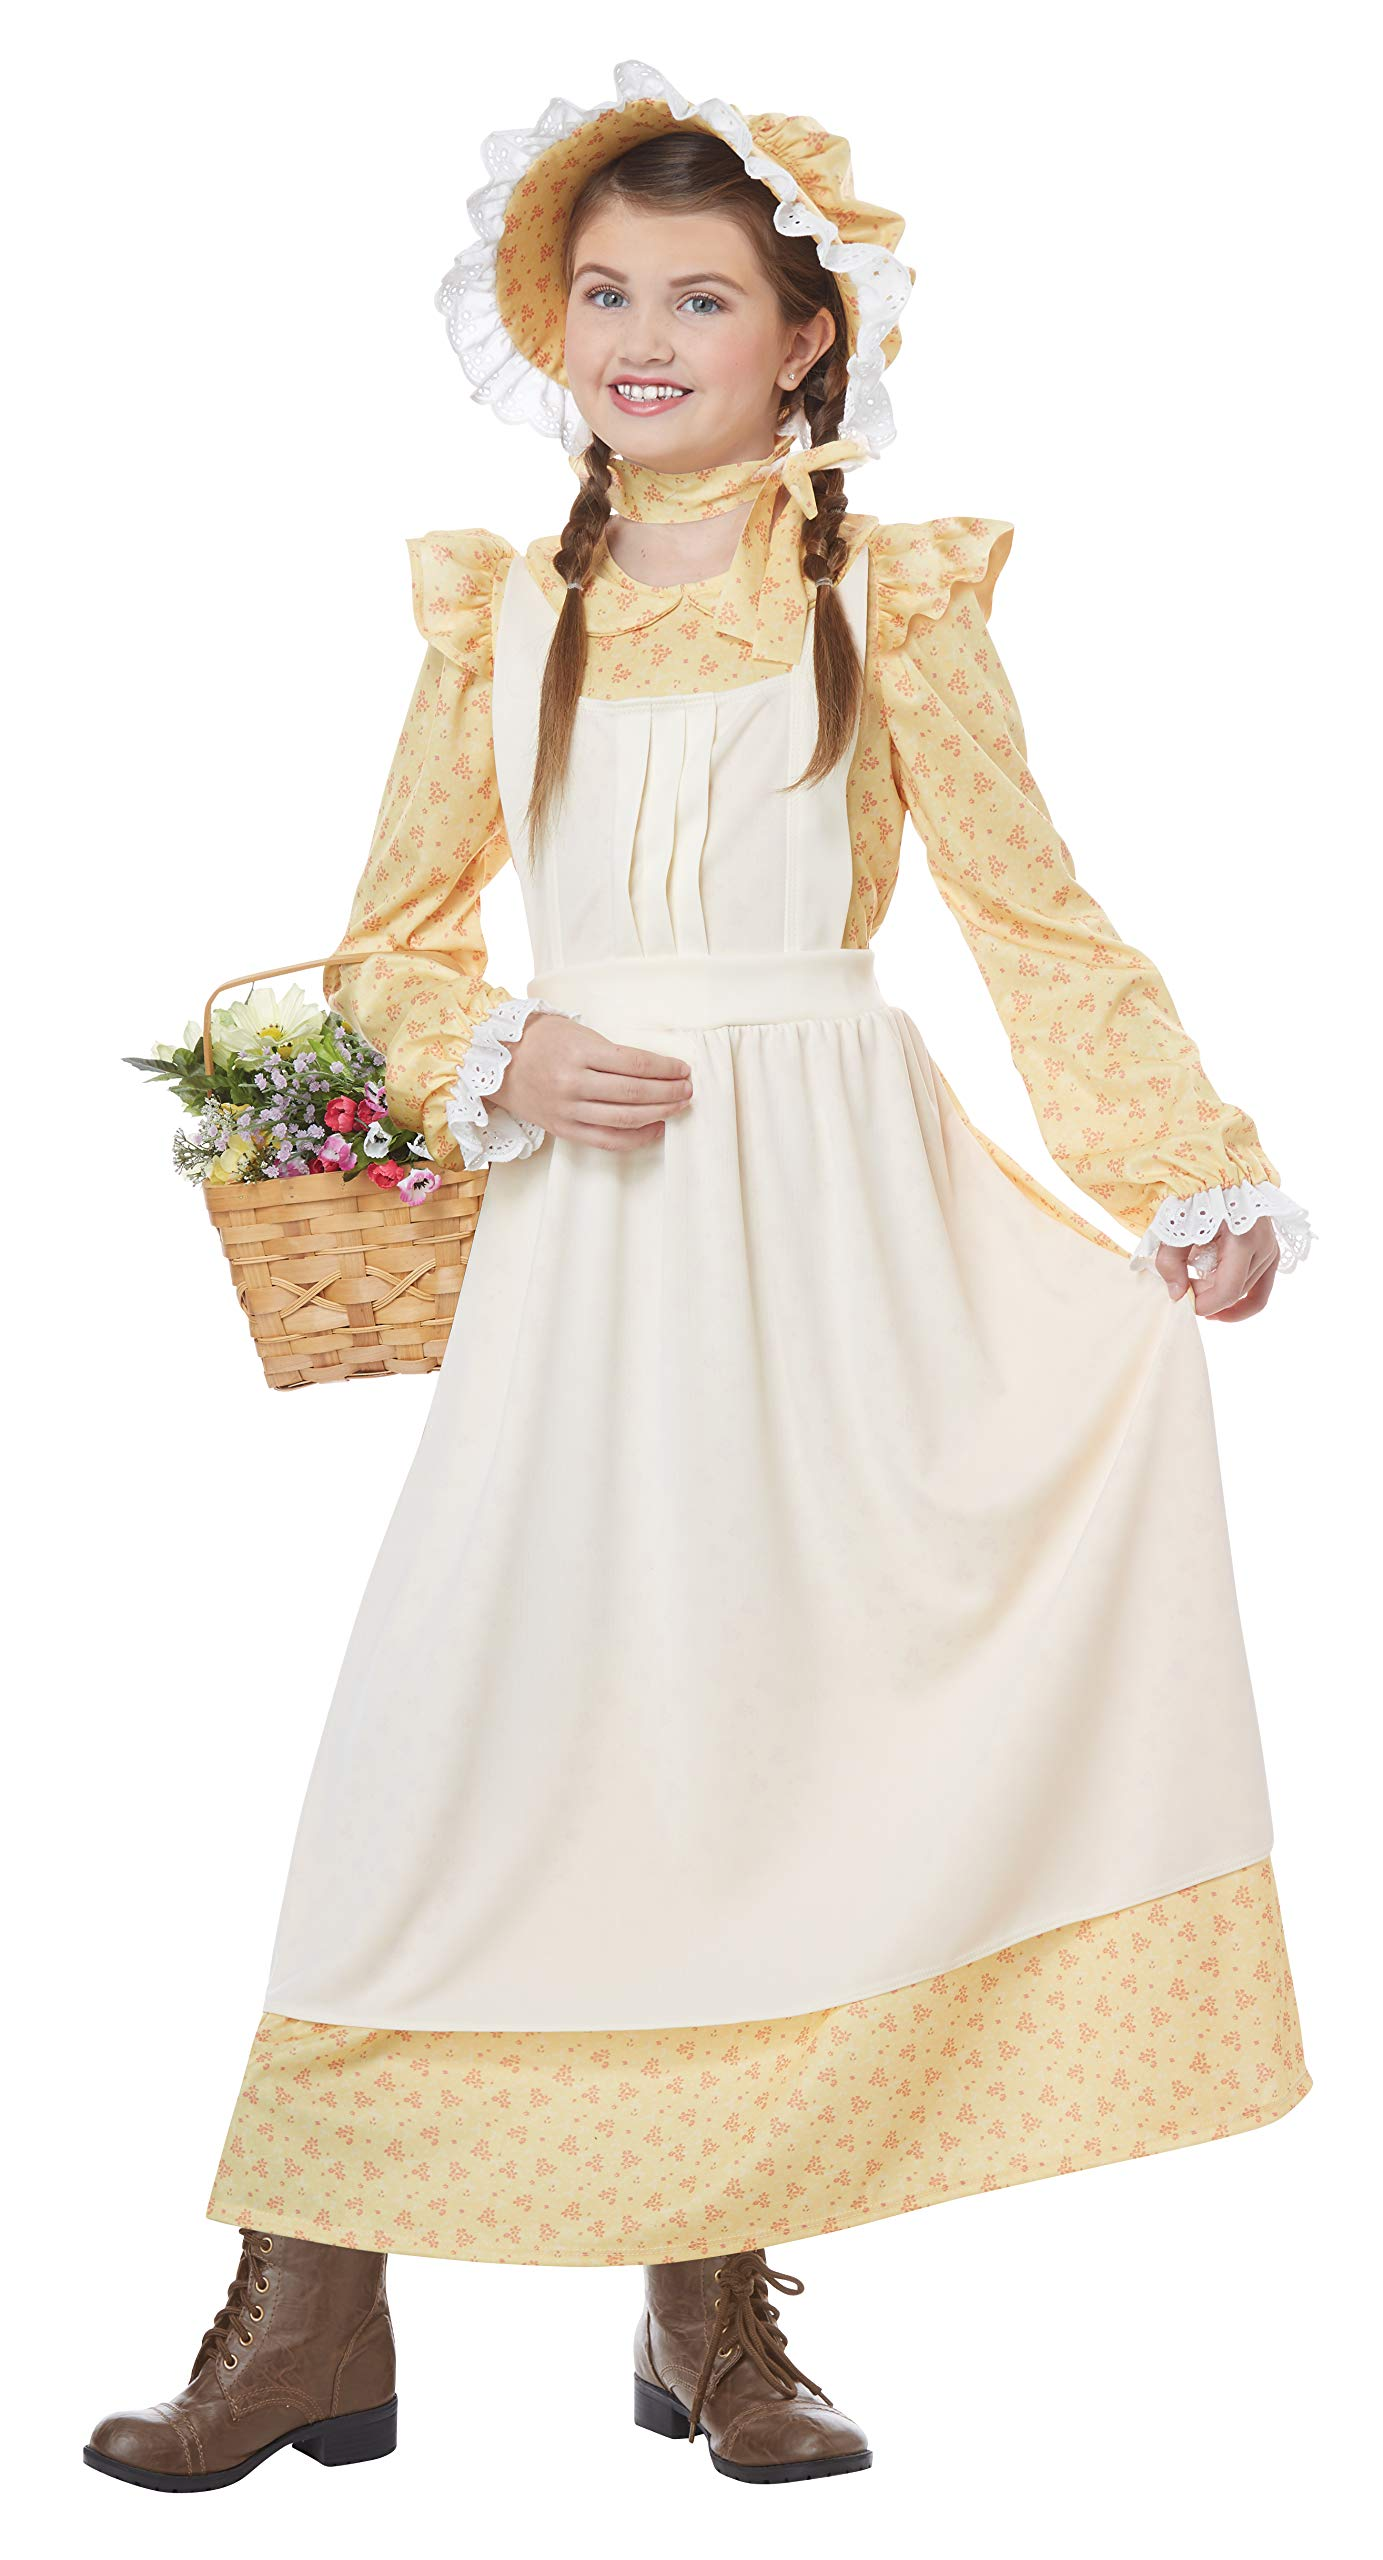 Prairie Girl Girls Costume by California Costumes